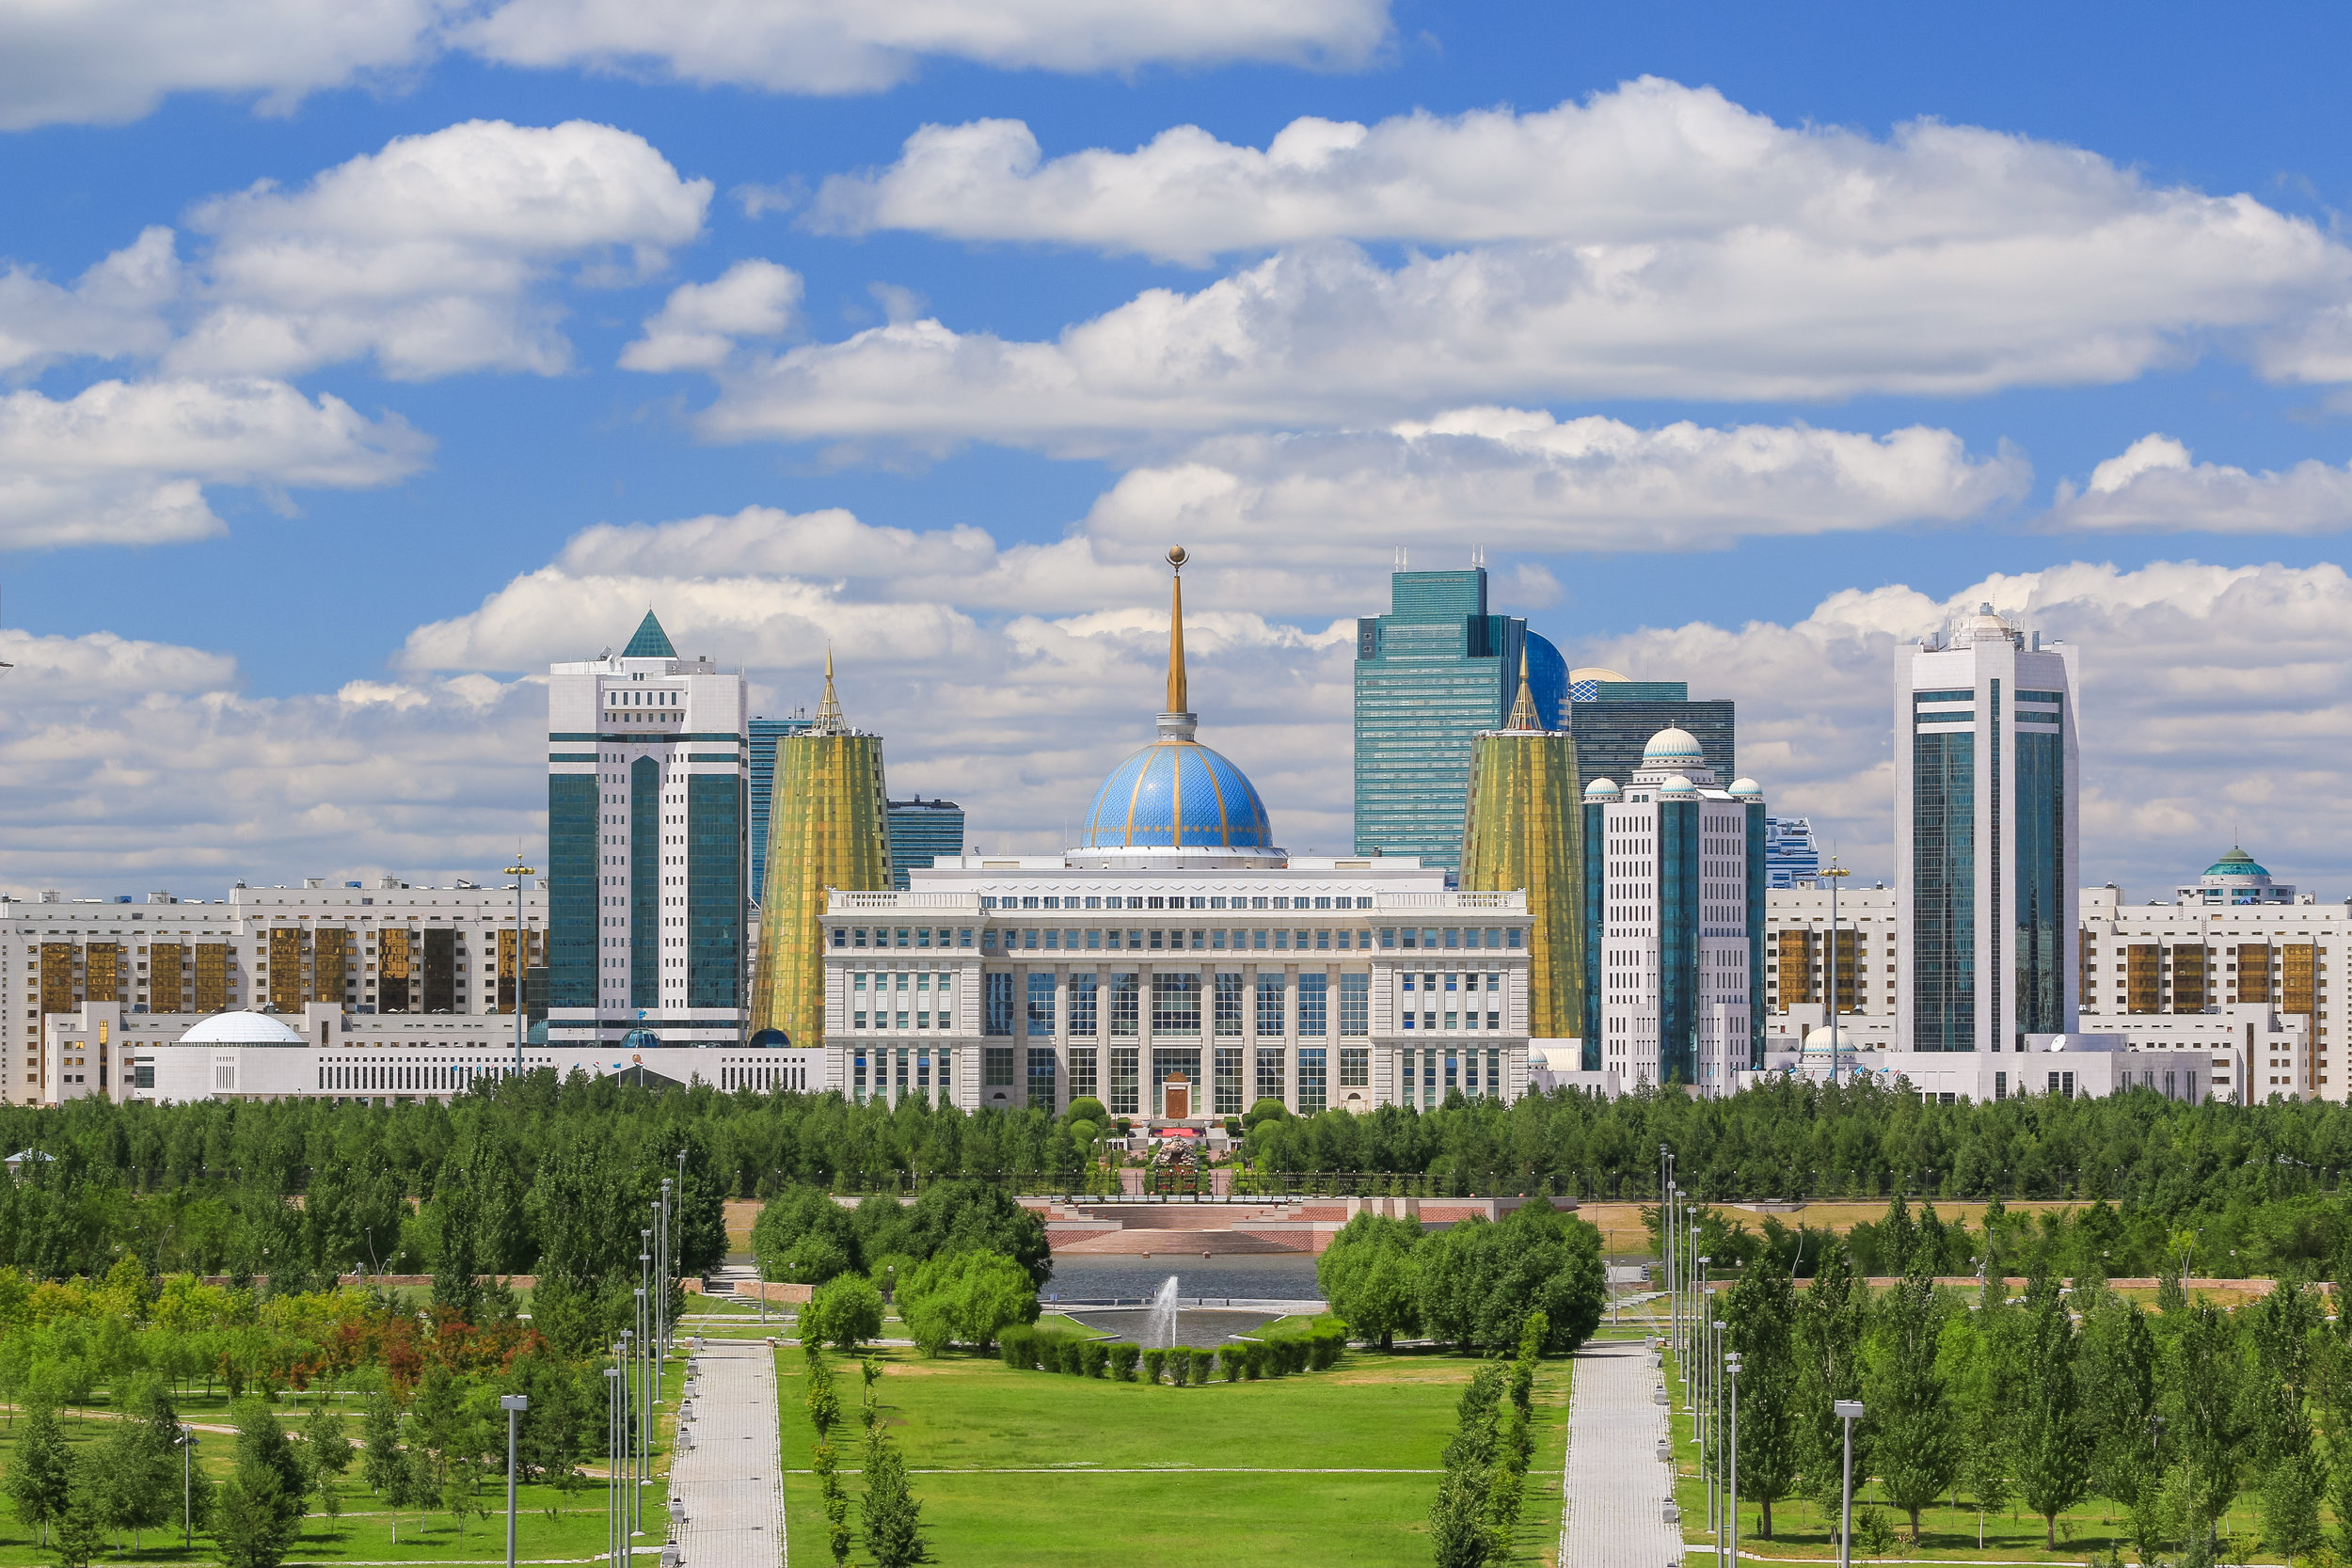 Parkland that meanders around Astana and the banks of the Ishim River. Photo: Pavel Tenyakov